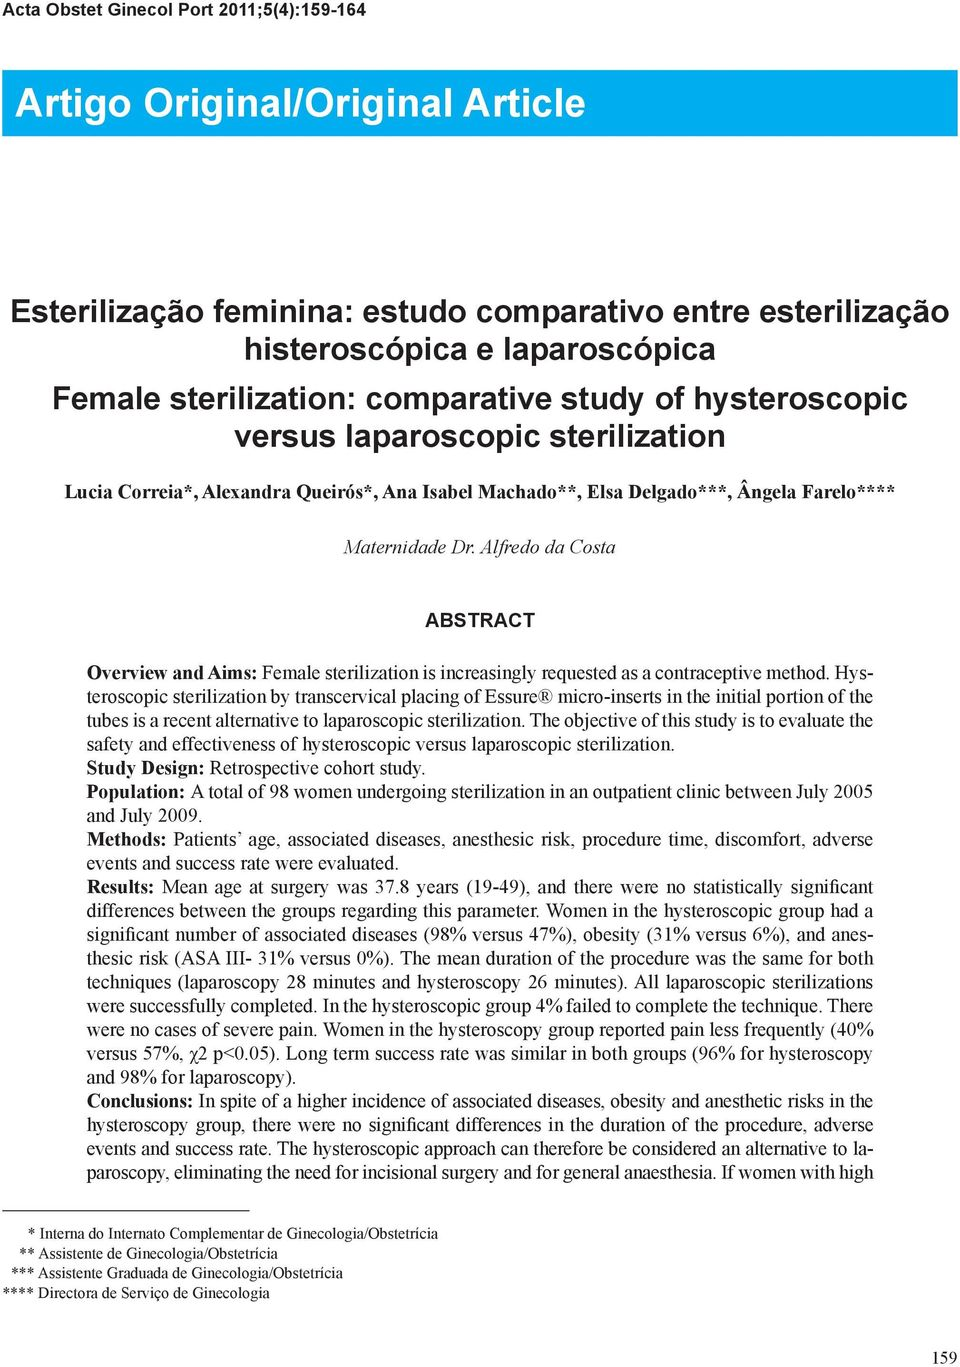 Alfredo da Costa ABSTRACT Overview and Aims: Female sterilization is increasingly requested as a contraceptive method.